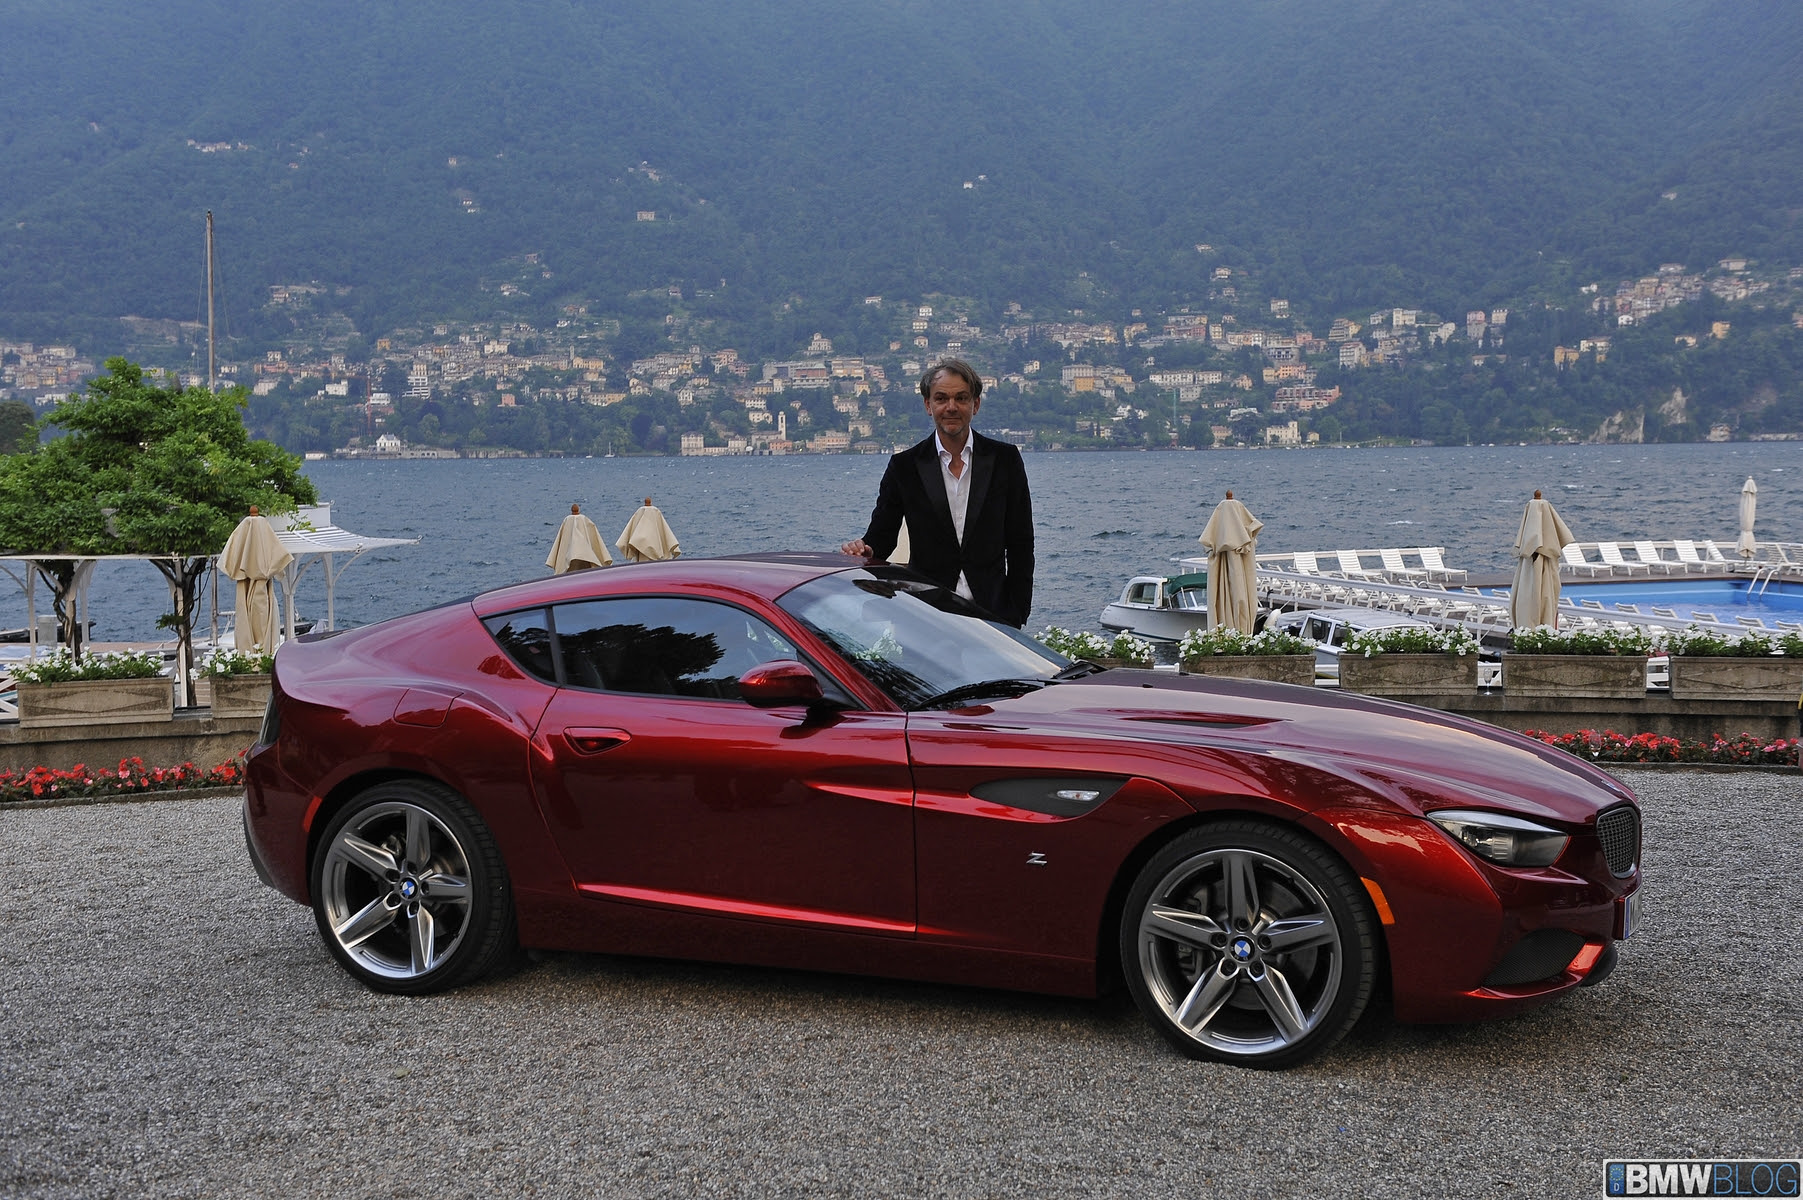 Real Life Video: BMW Zagato Coupe with engine noise (400 hp)